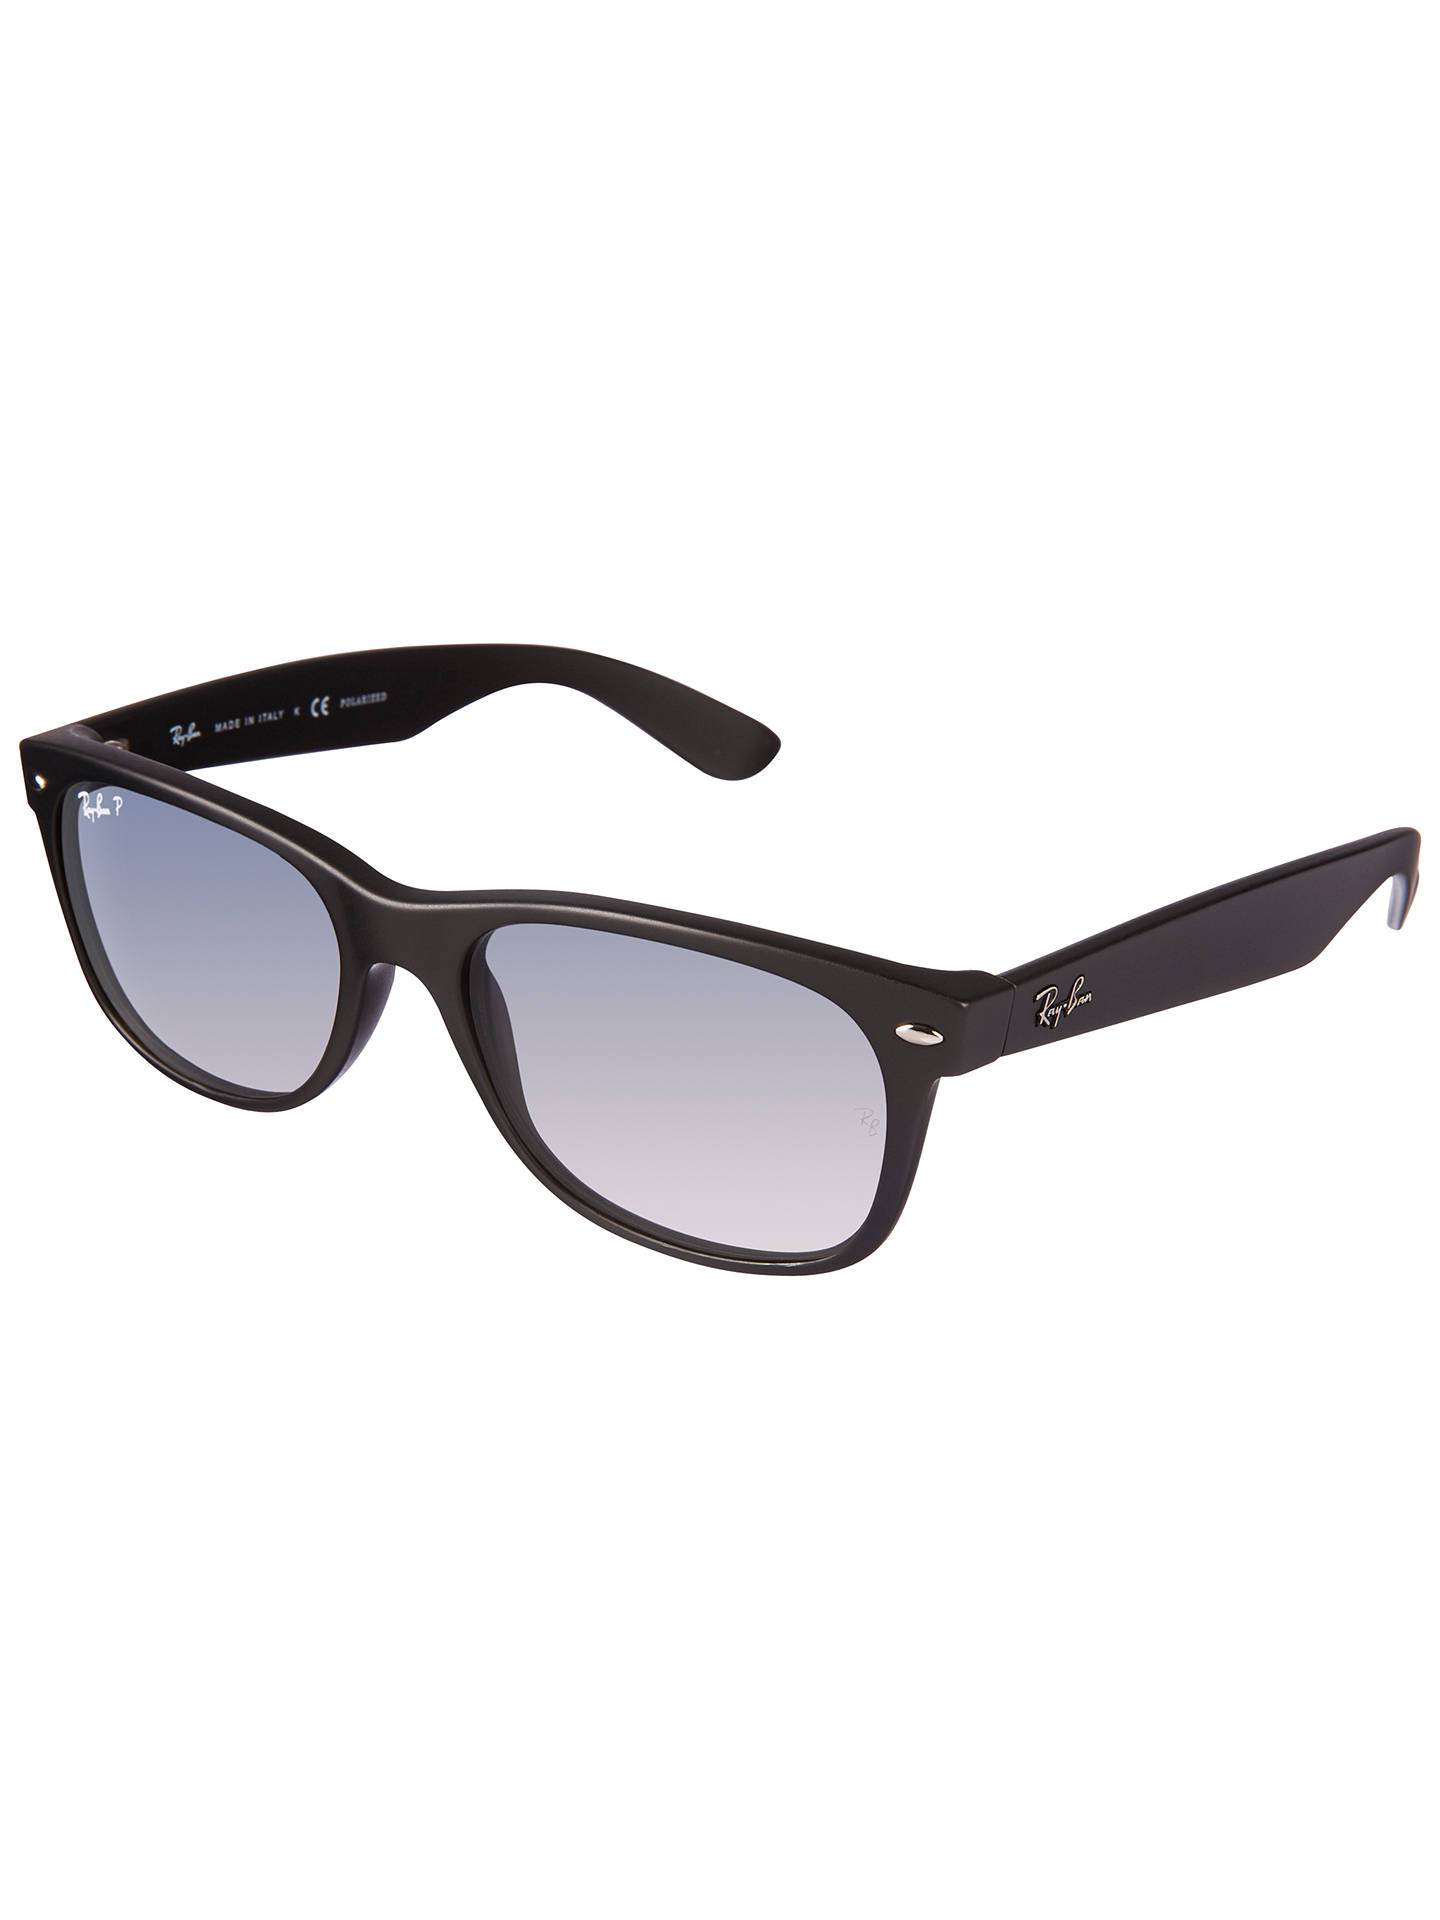 18b7cc87f9 Ray-Ban RB2132 New Wayfarer Polarised Sunglasses at John Lewis ...